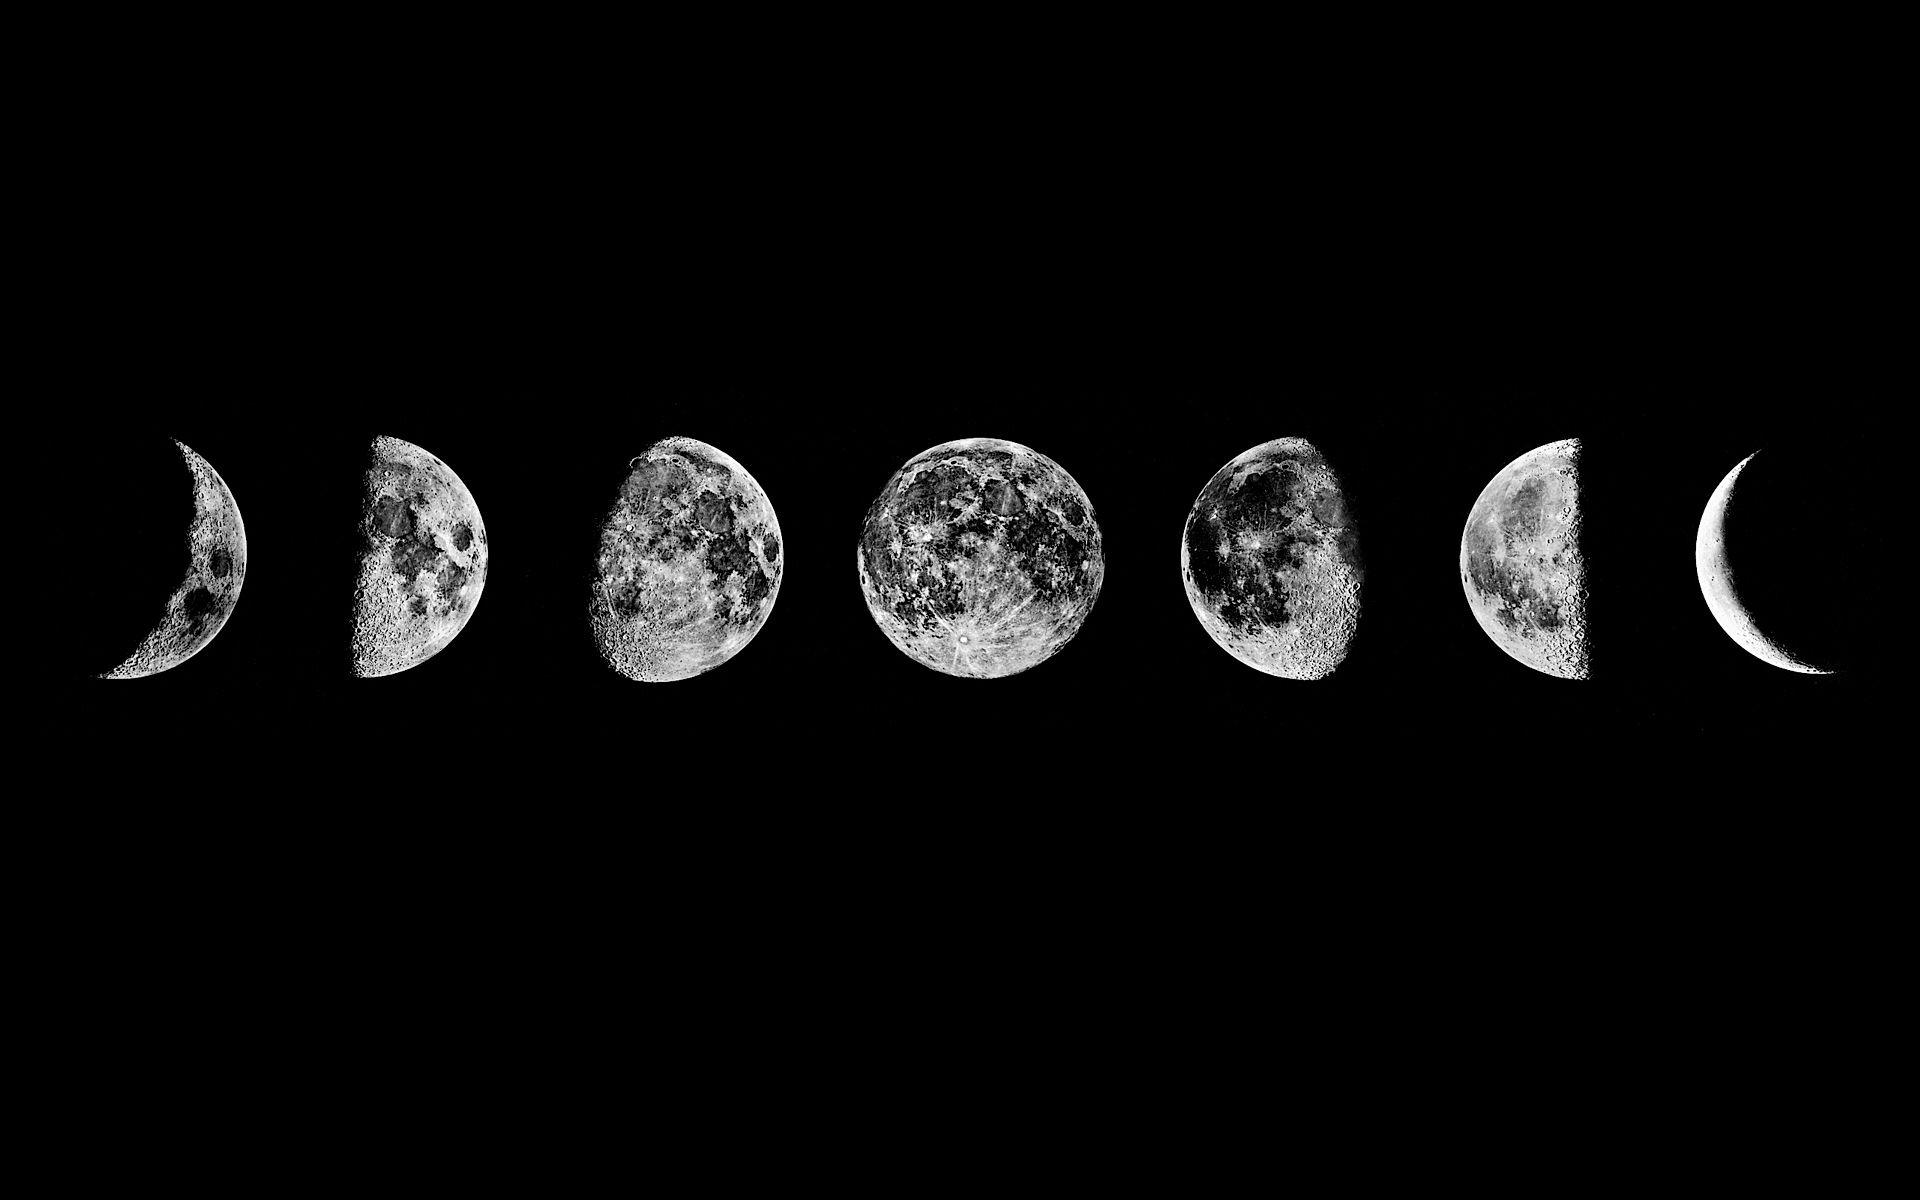 Moon phases Wallpaper #3505 | Home is where the ♥ is.